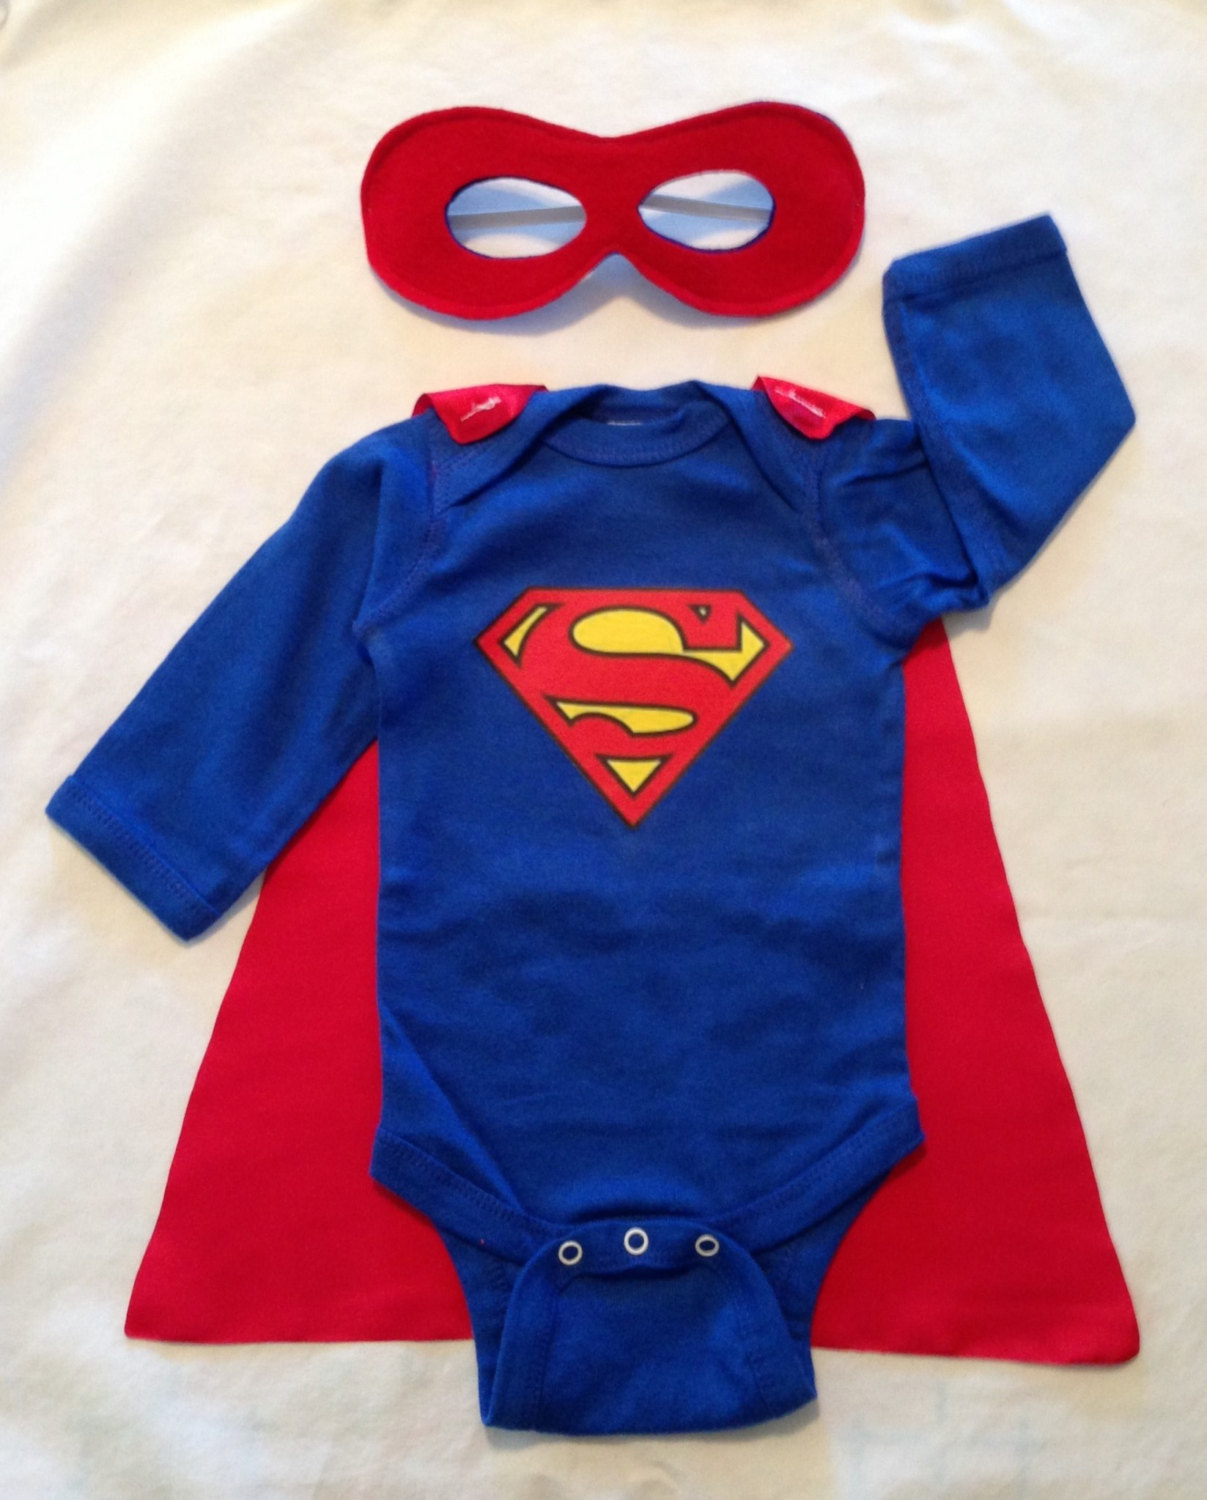 Kids. Buy Superheroes online at George. Shop from our latest superheroes range in kids. Fantastic quality, style and value.